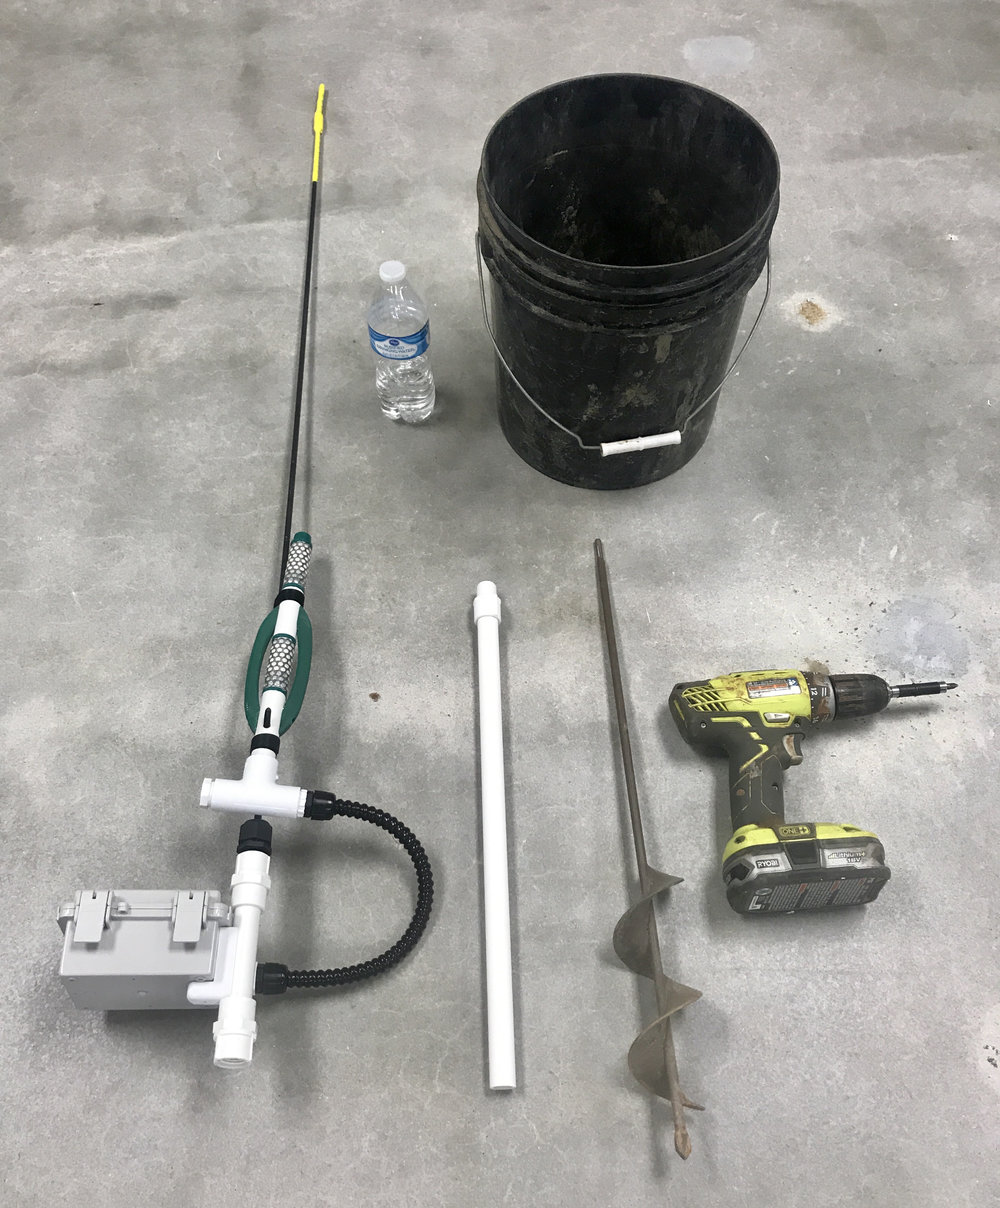 What do you need?  - 1. Sensor station2. Auger drill bit3. Empty bucket4. Mounting pole5. Cordless drill6. Water